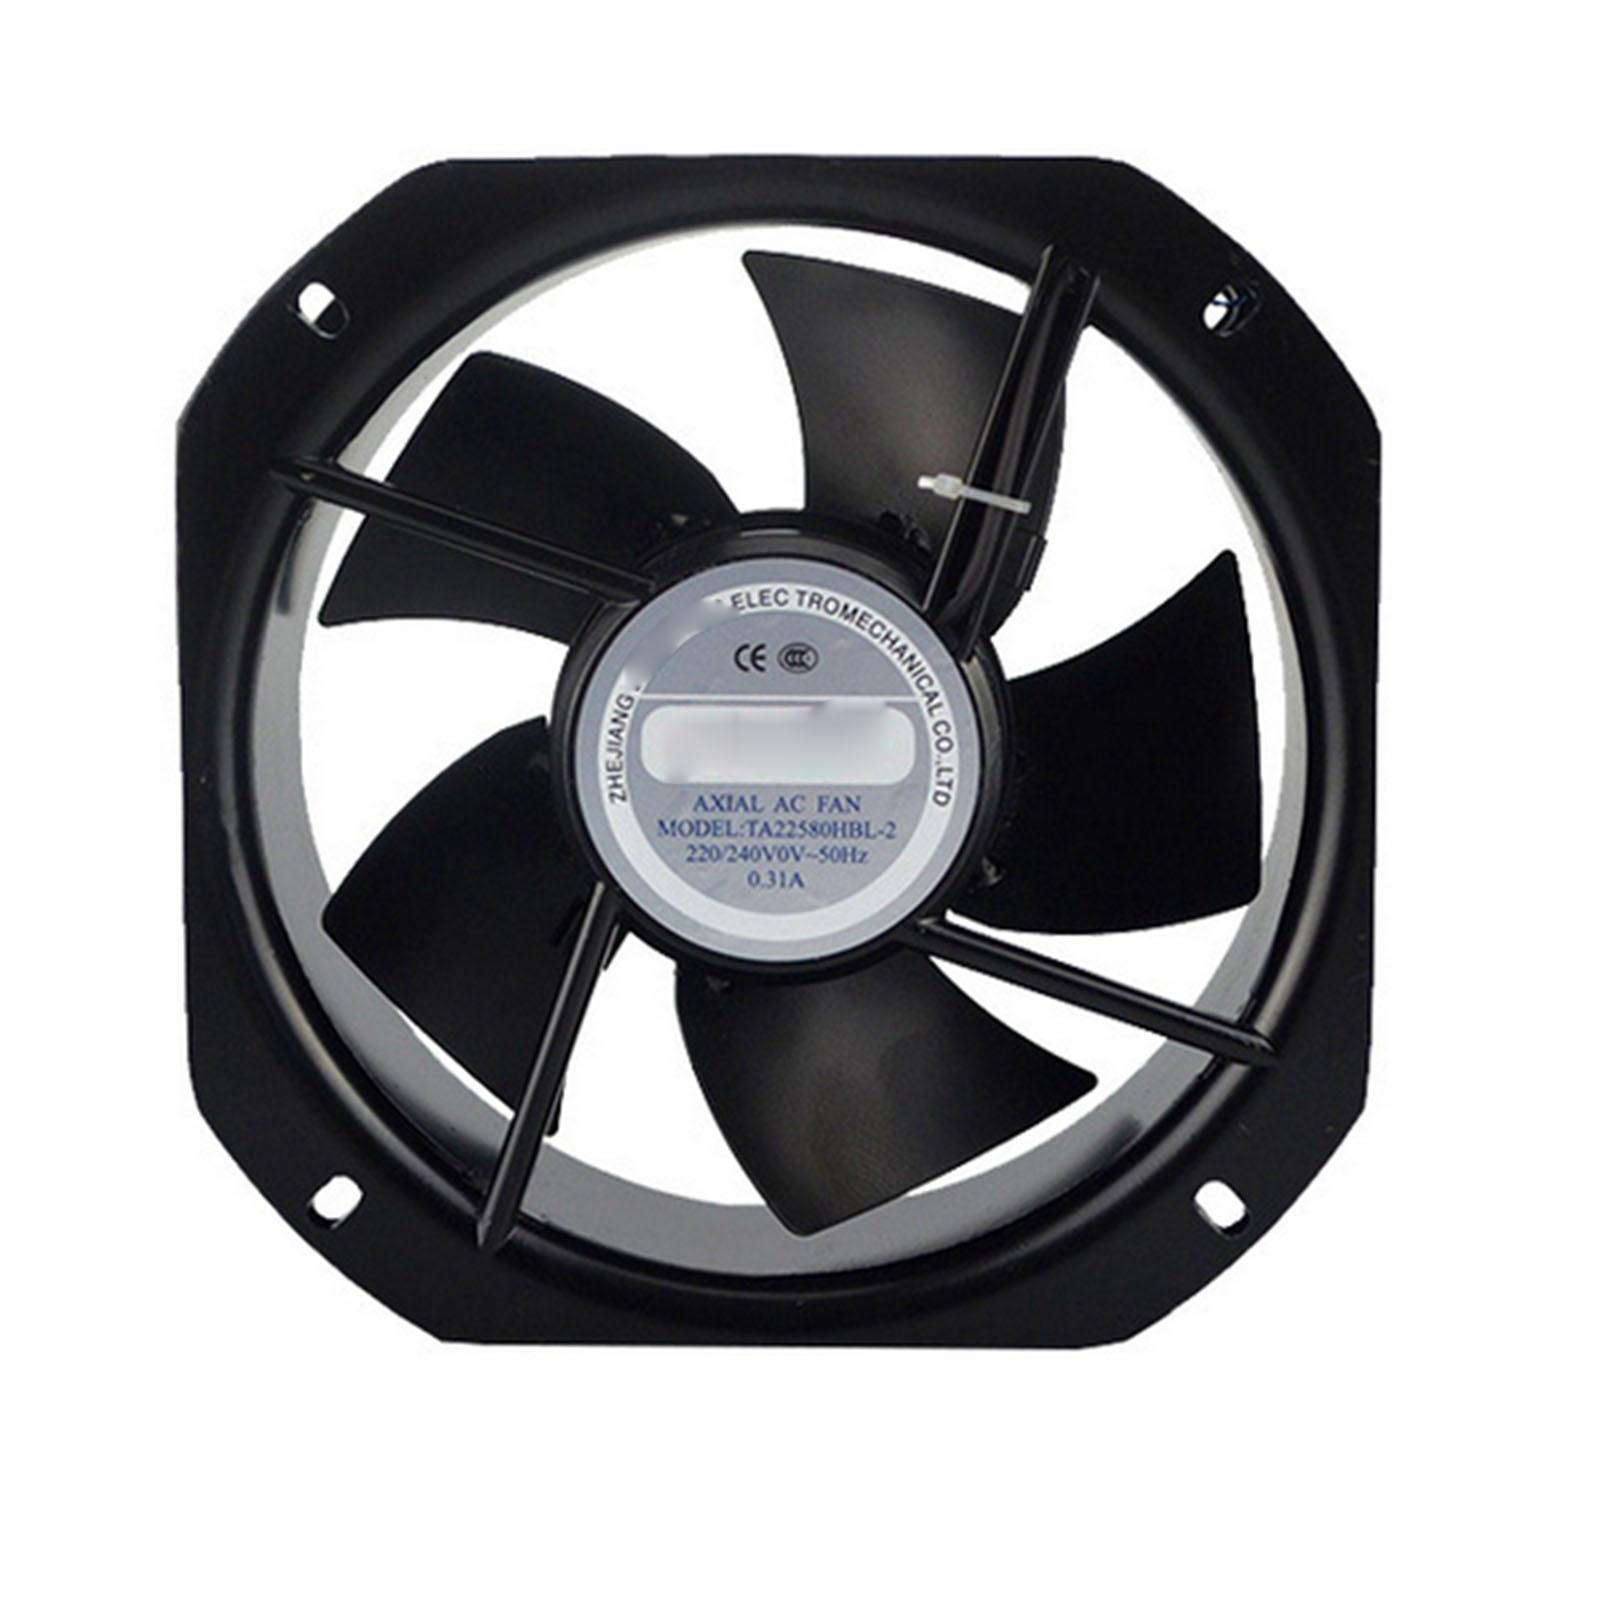 220V AC 225x225x80mm Axial Radiator Fan 588CFM 2500RPM Ball Bearing High Speed цена 2017